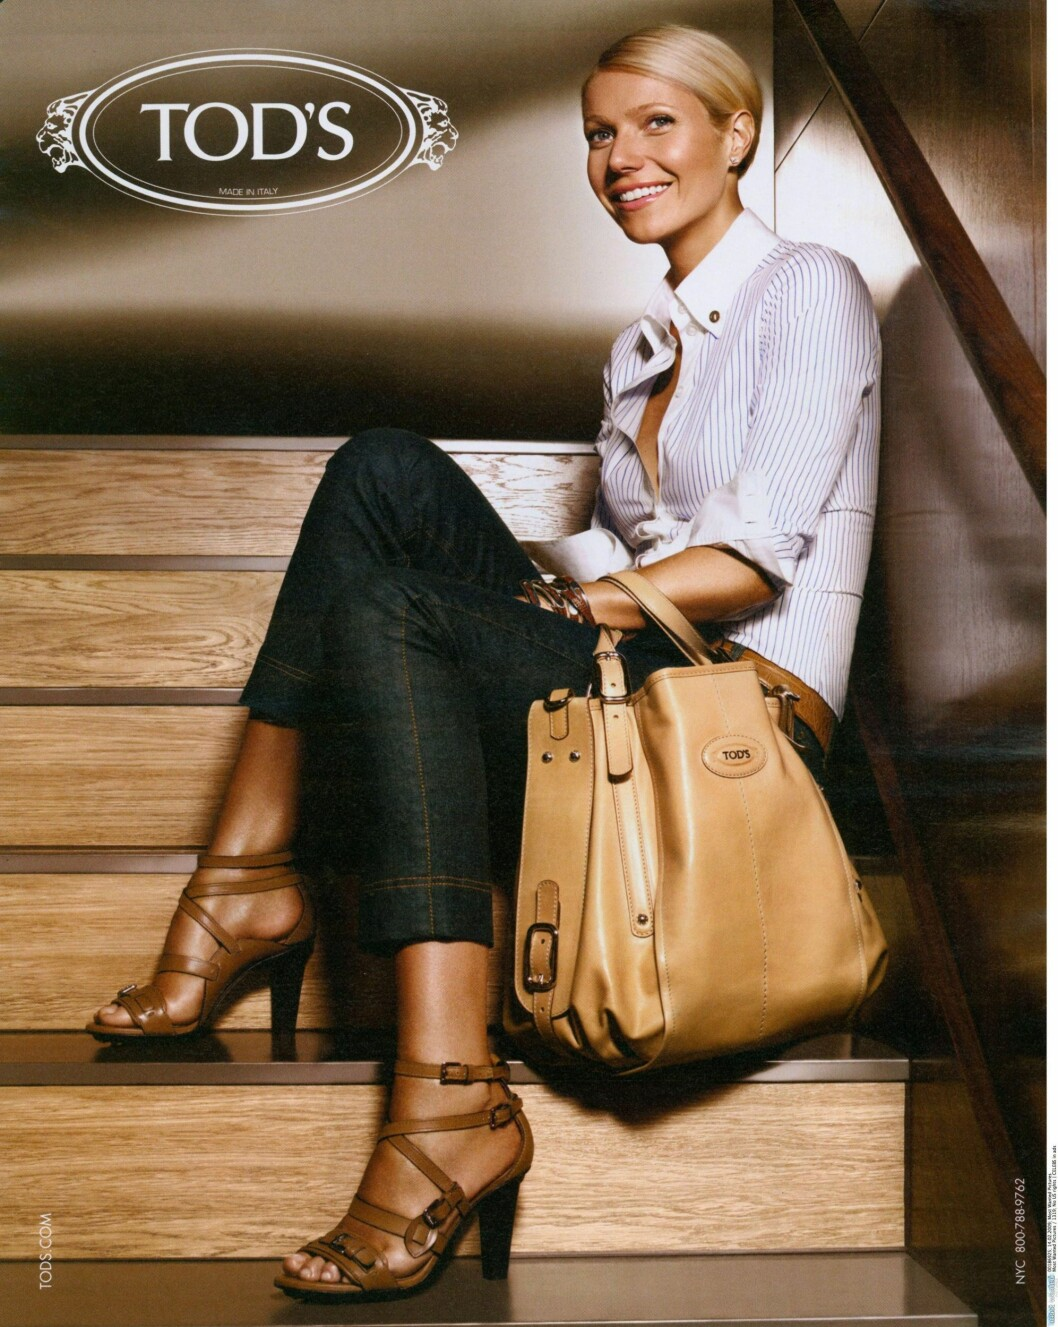 Det er skuespiller Gwyneth Paltrwo som fronter veskekampanjen for Tod's. Foto: All Over Press